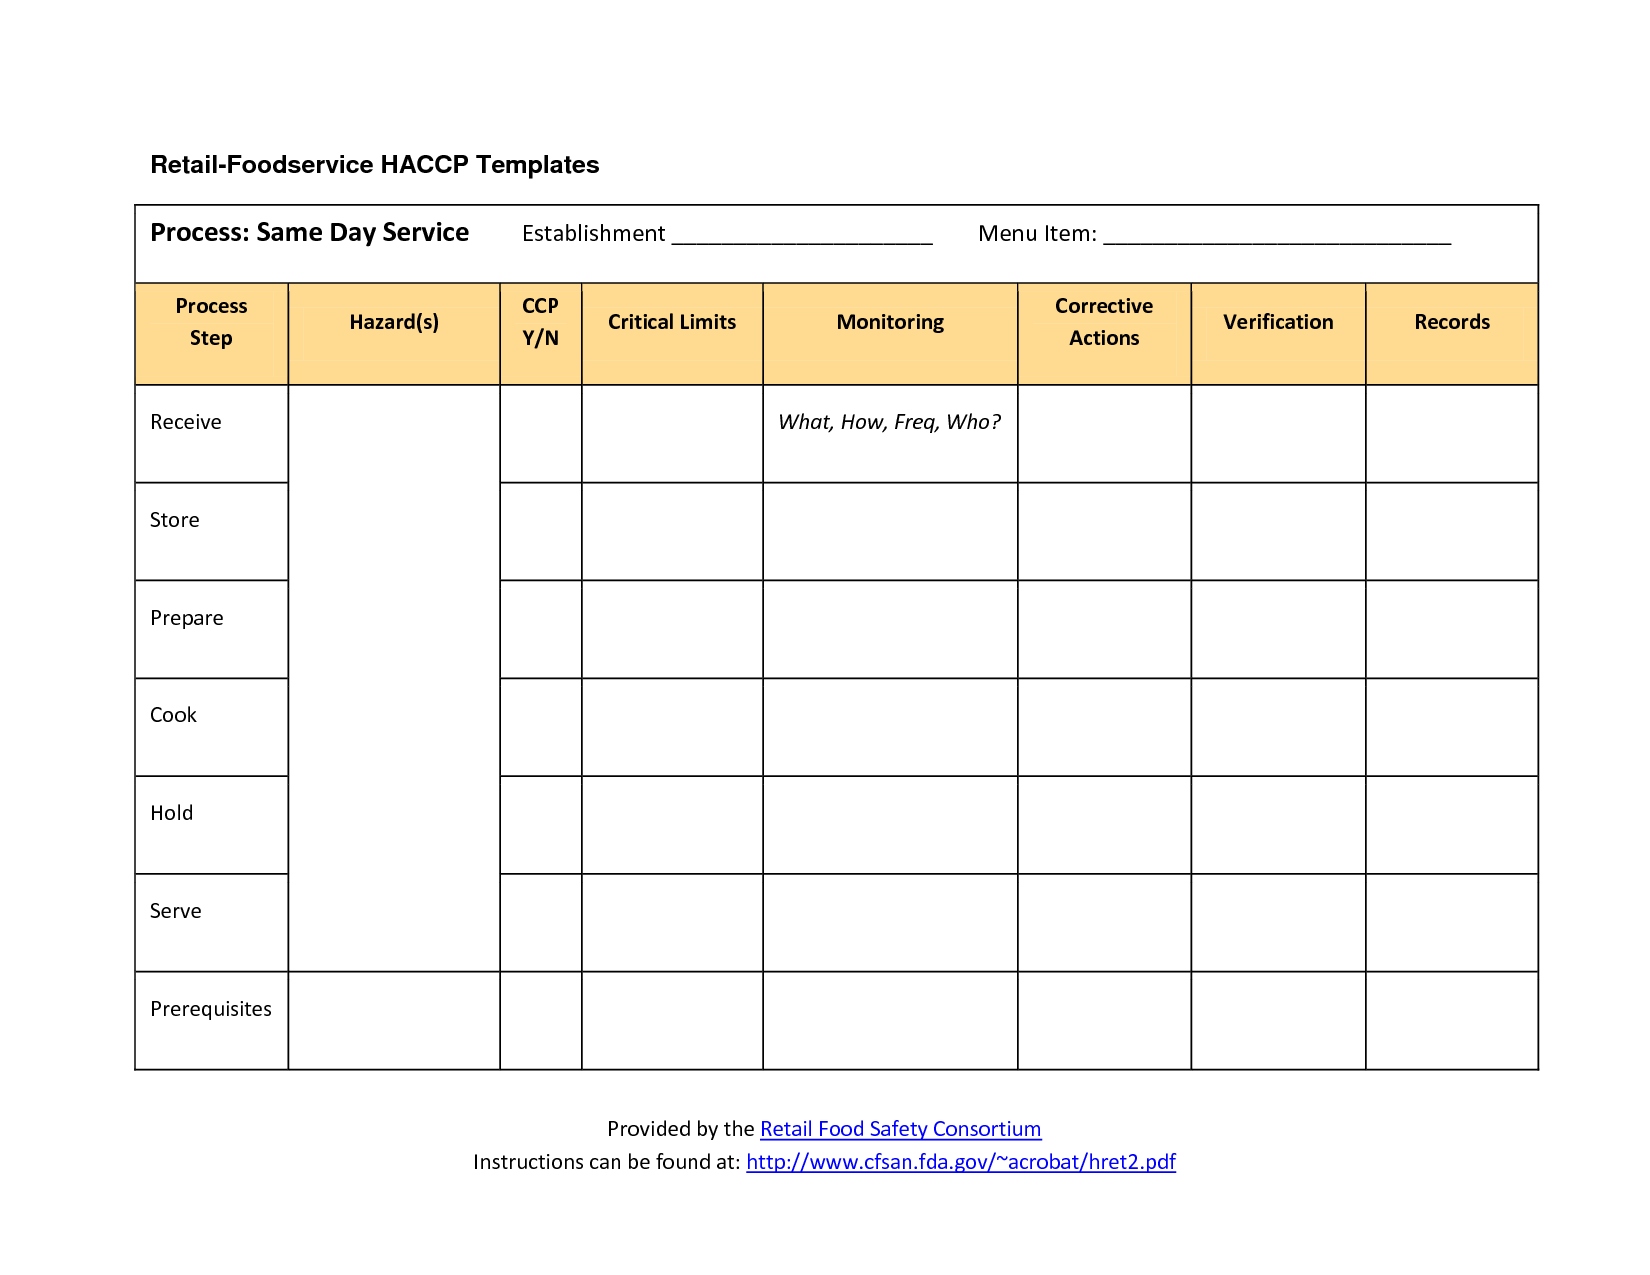 Haccp Plan Template  Retail Foodservice Haccp Templates  Haccp